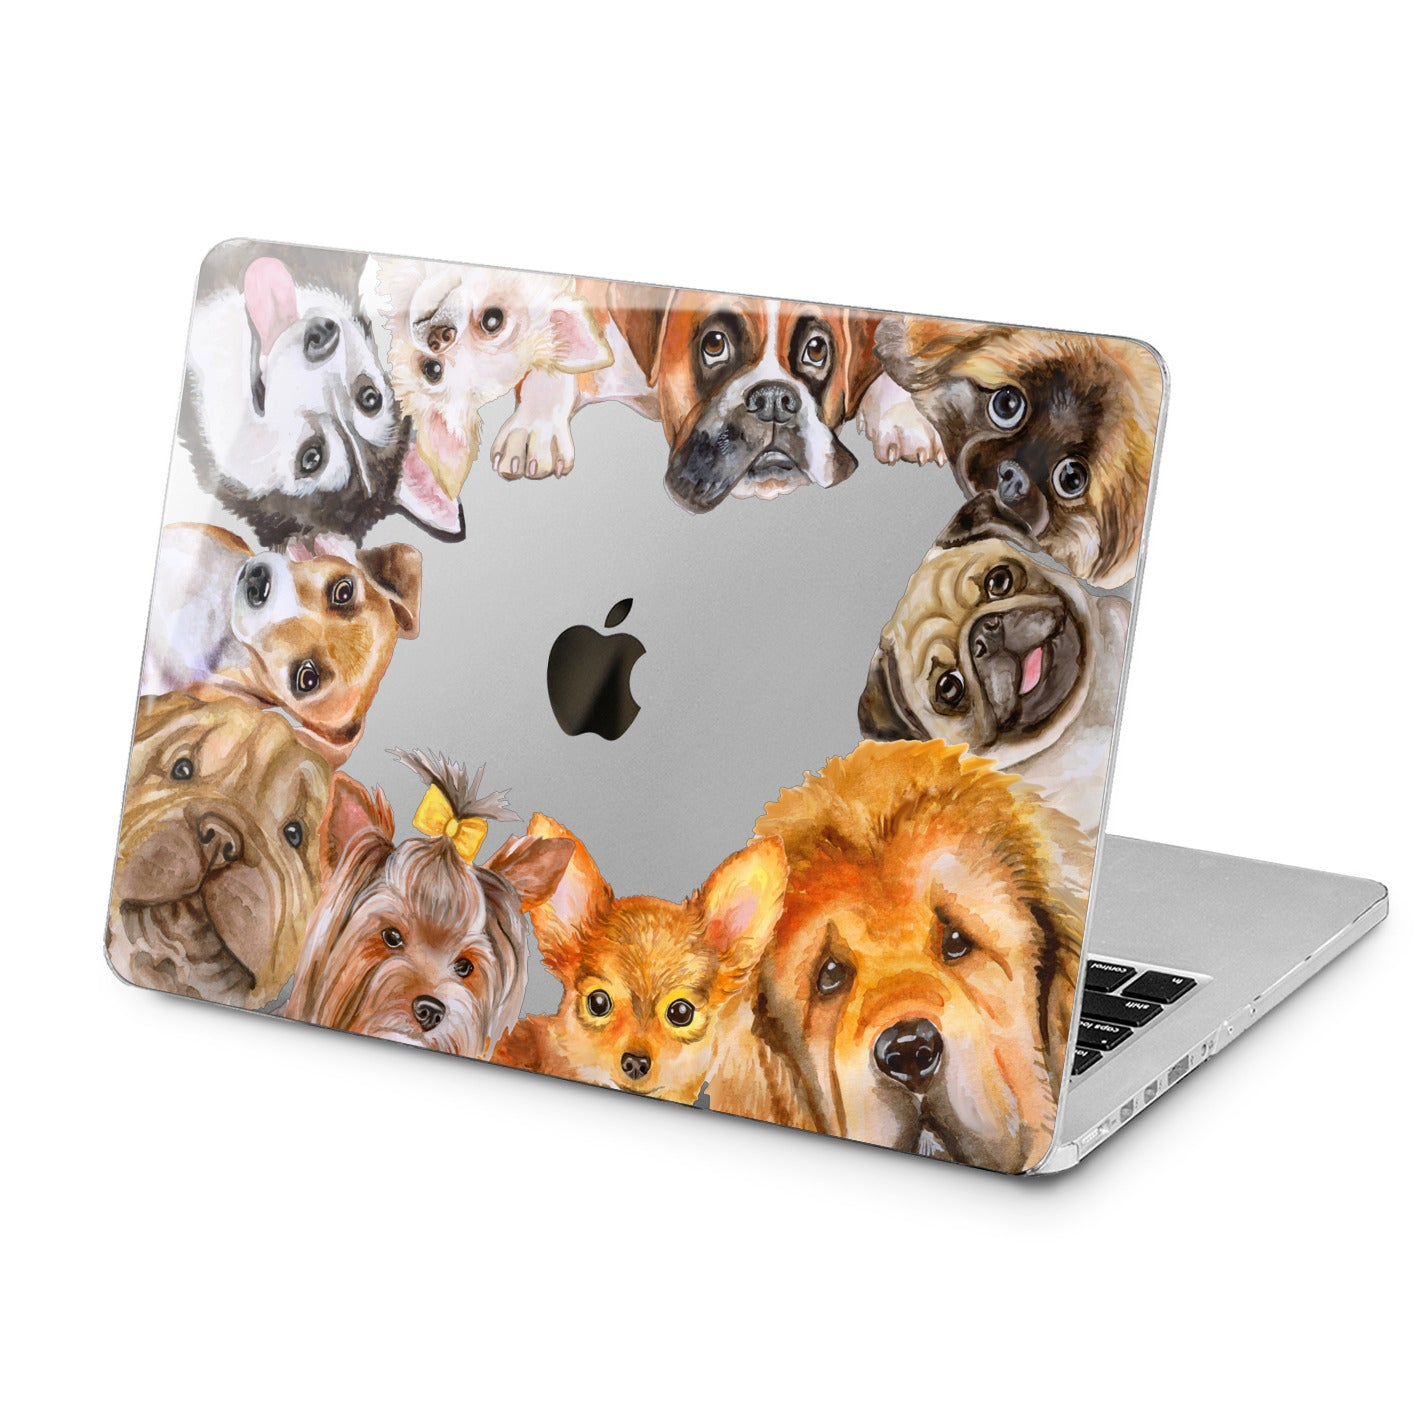 Lex Altern Lex Altern Lovely Dogs Case for your Laptop Apple Macbook.